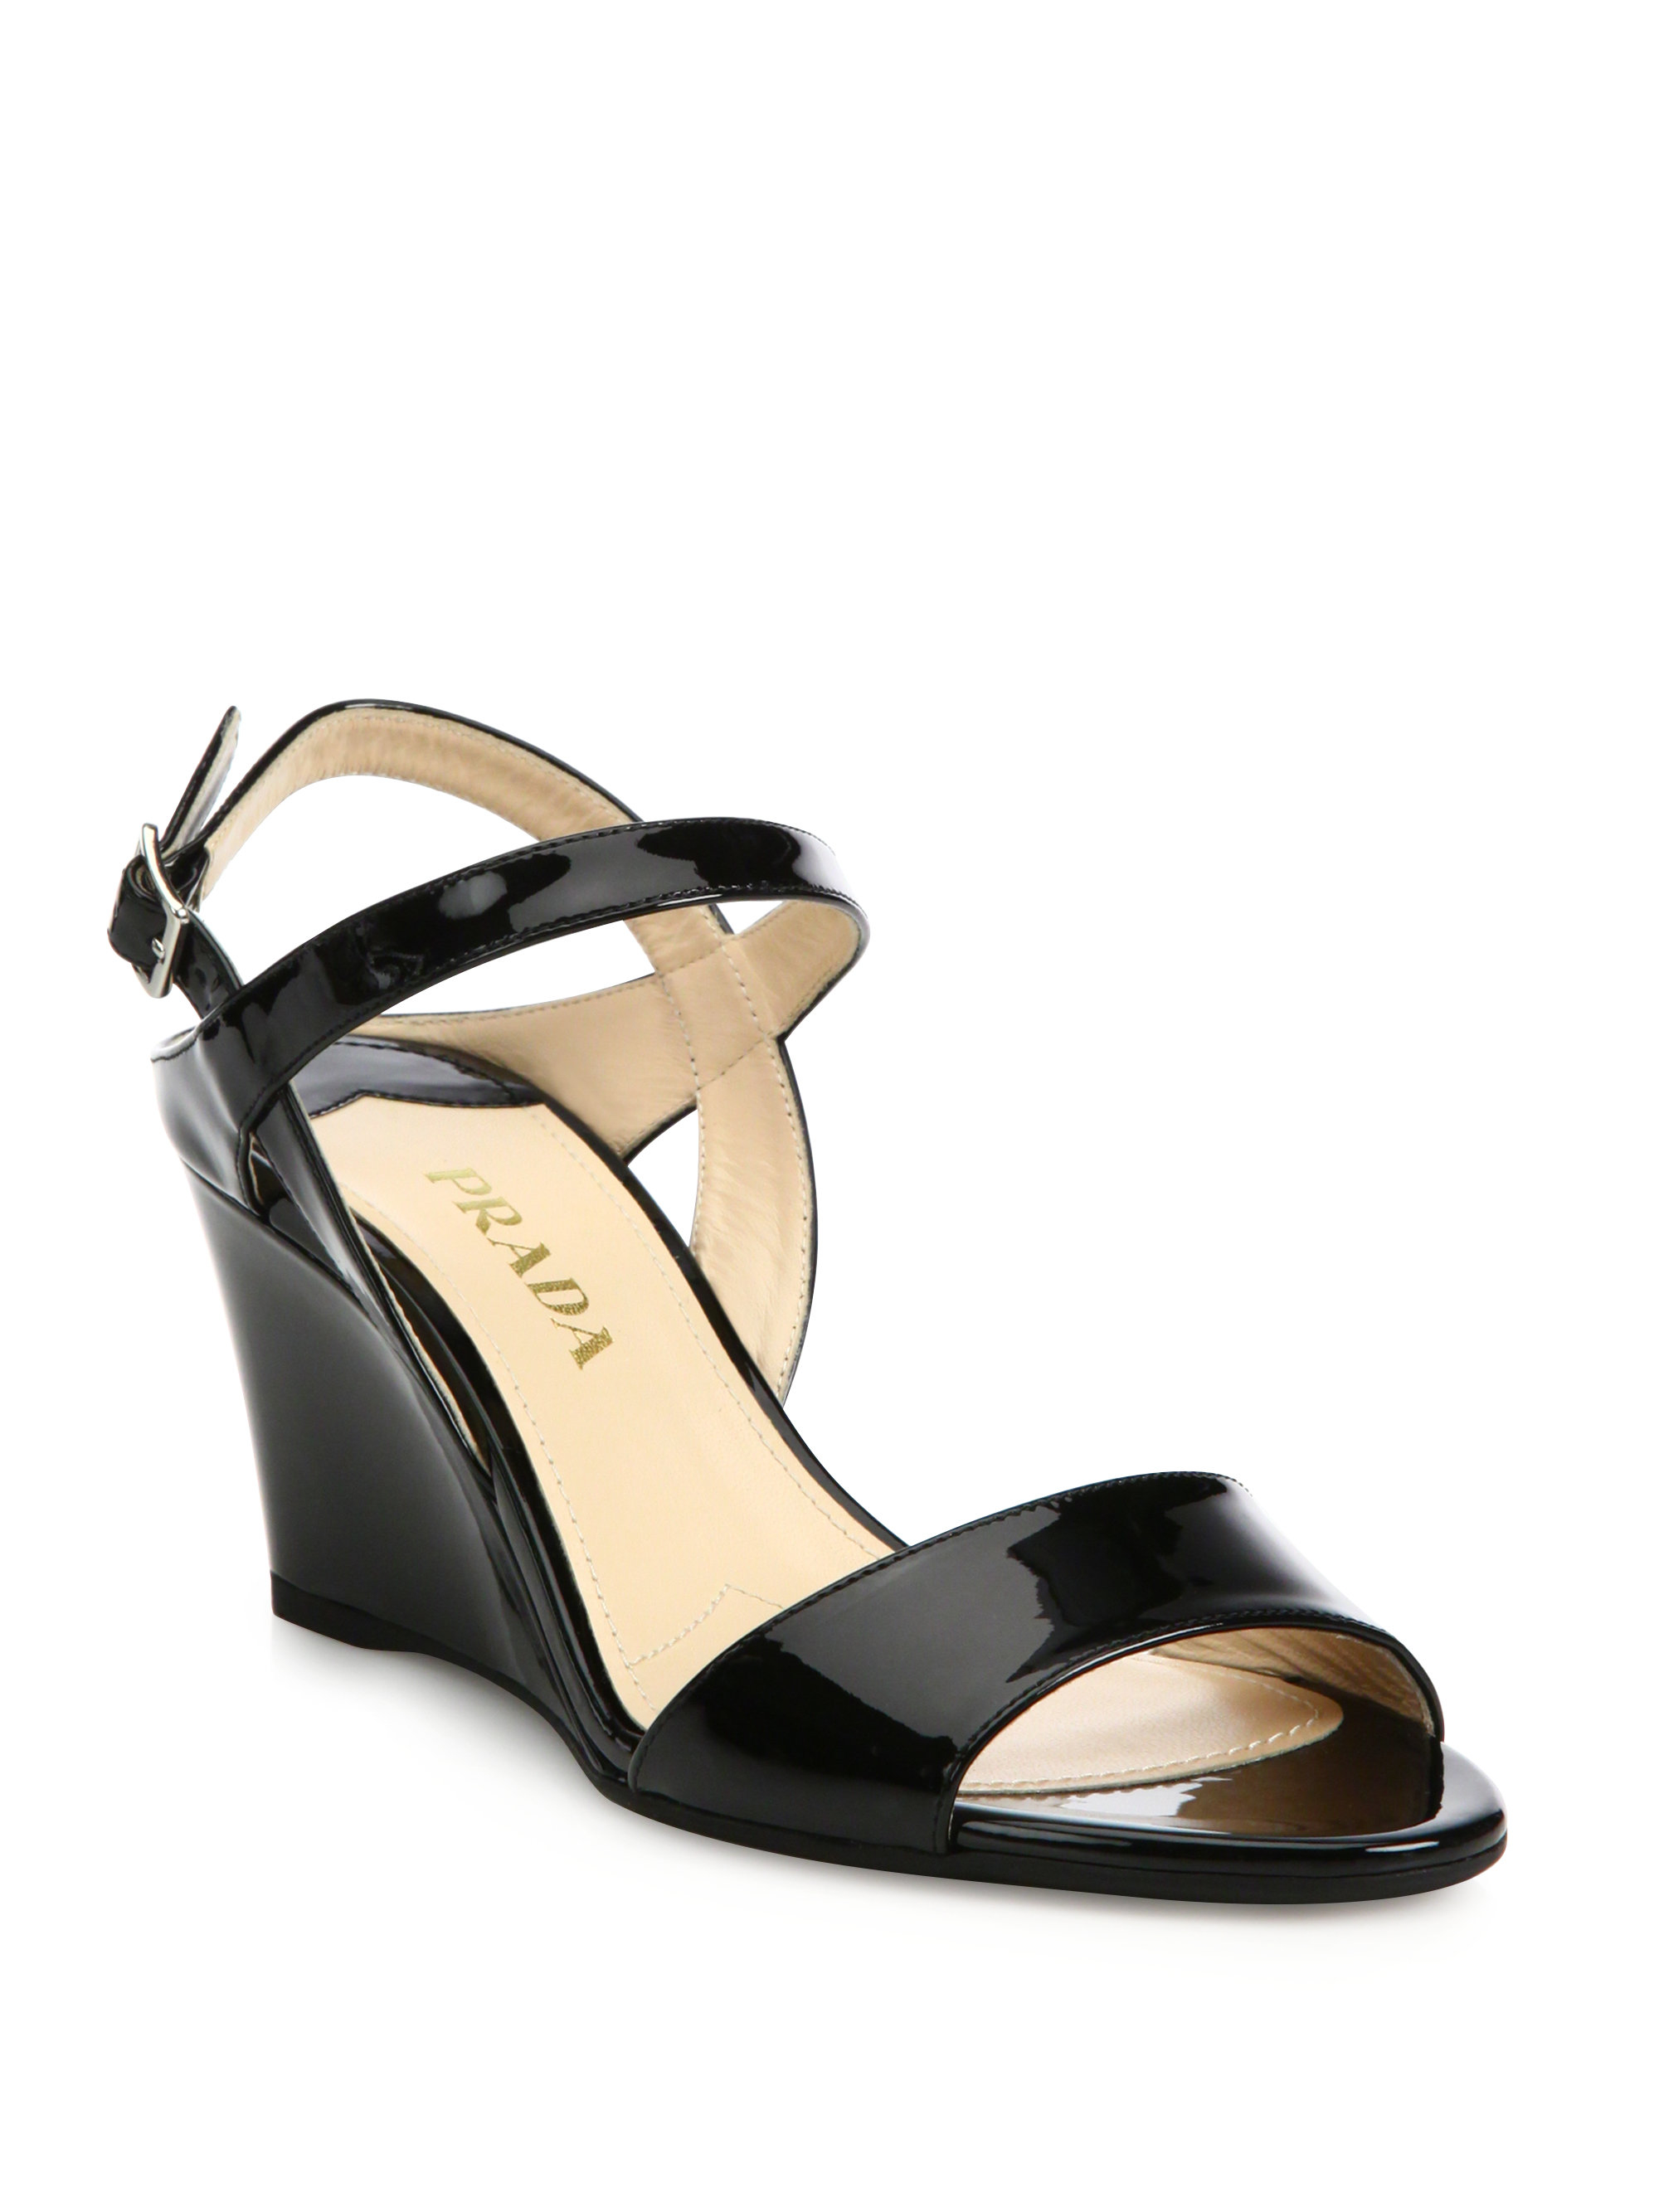 bb7f7beeea11fc Lyst - Prada Patent Leather Ankle-strap Wedge Sandals in Black